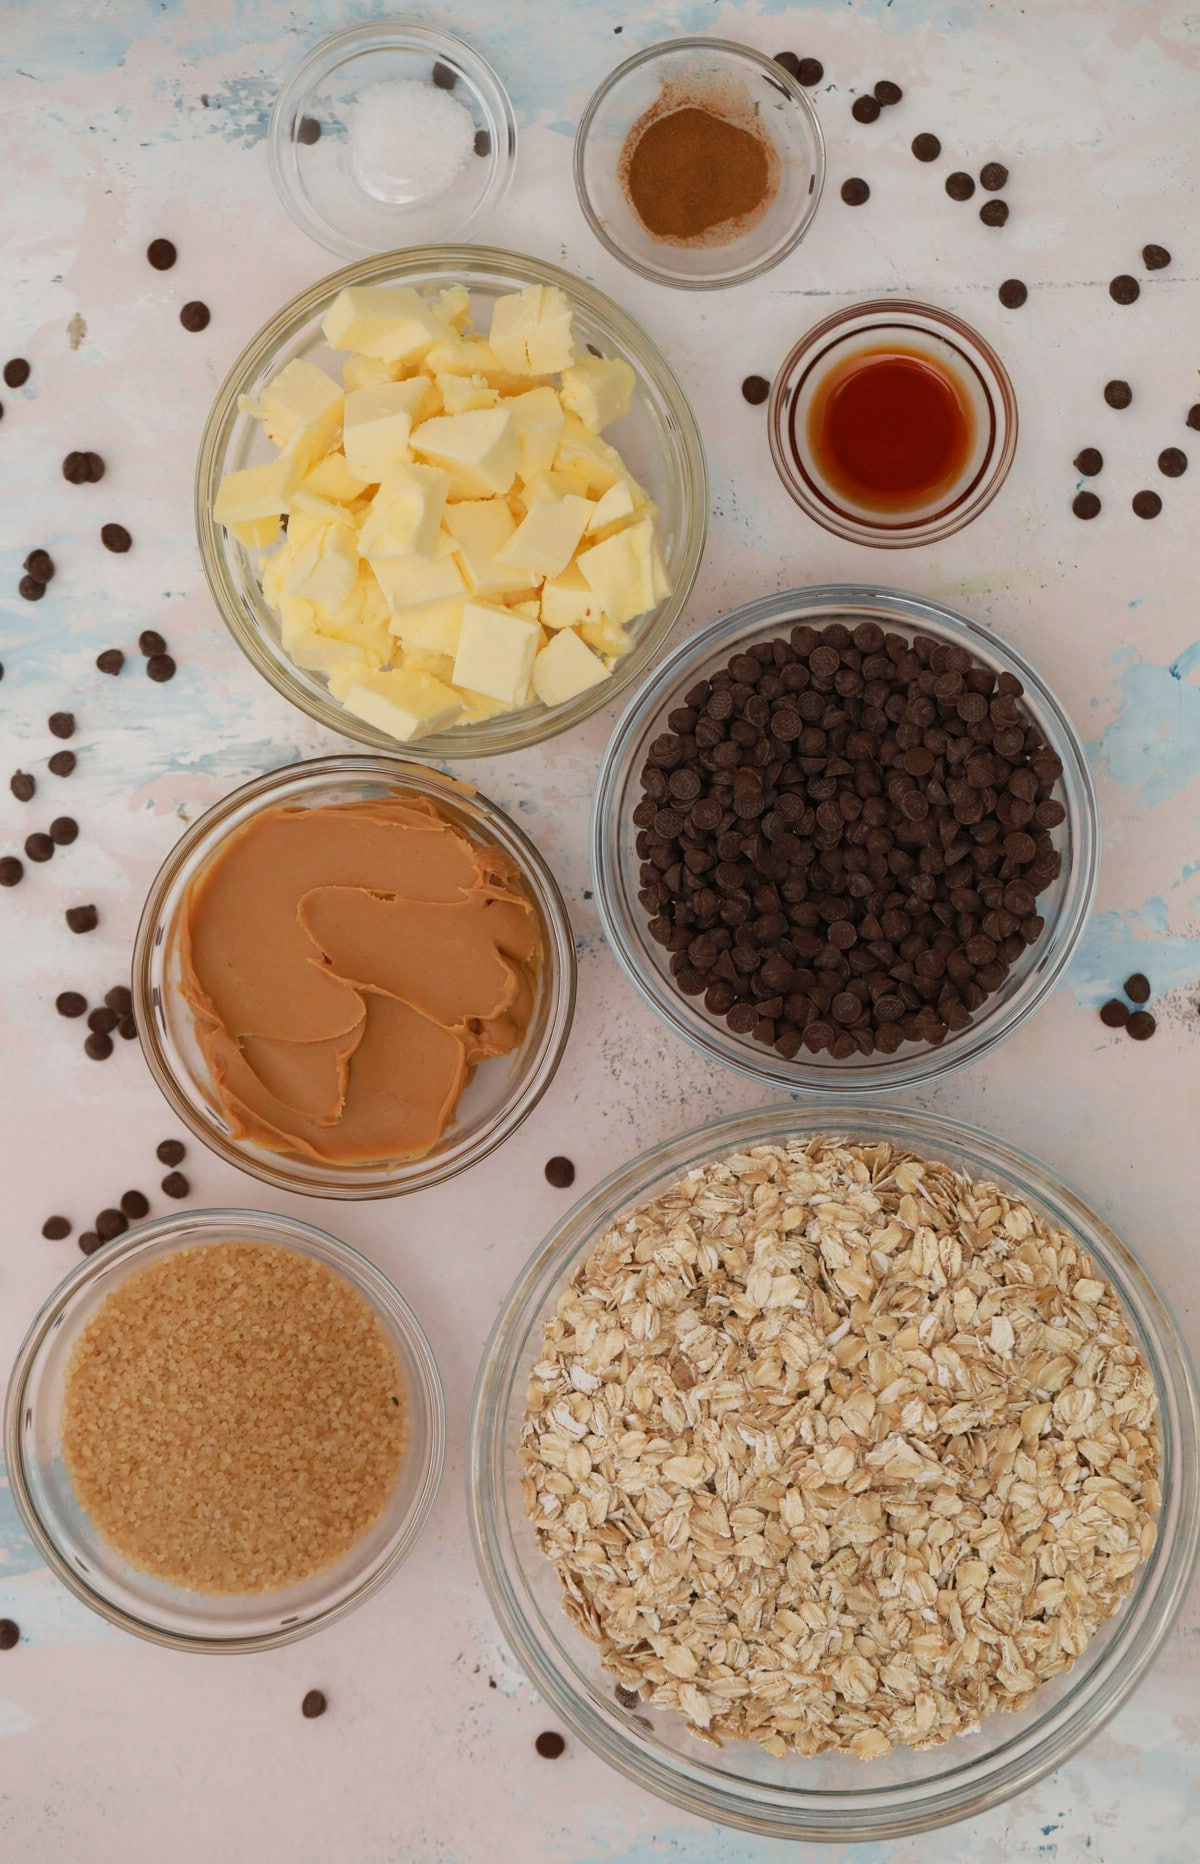 Ingredients for oatmeal bars in glass bowls on white counter